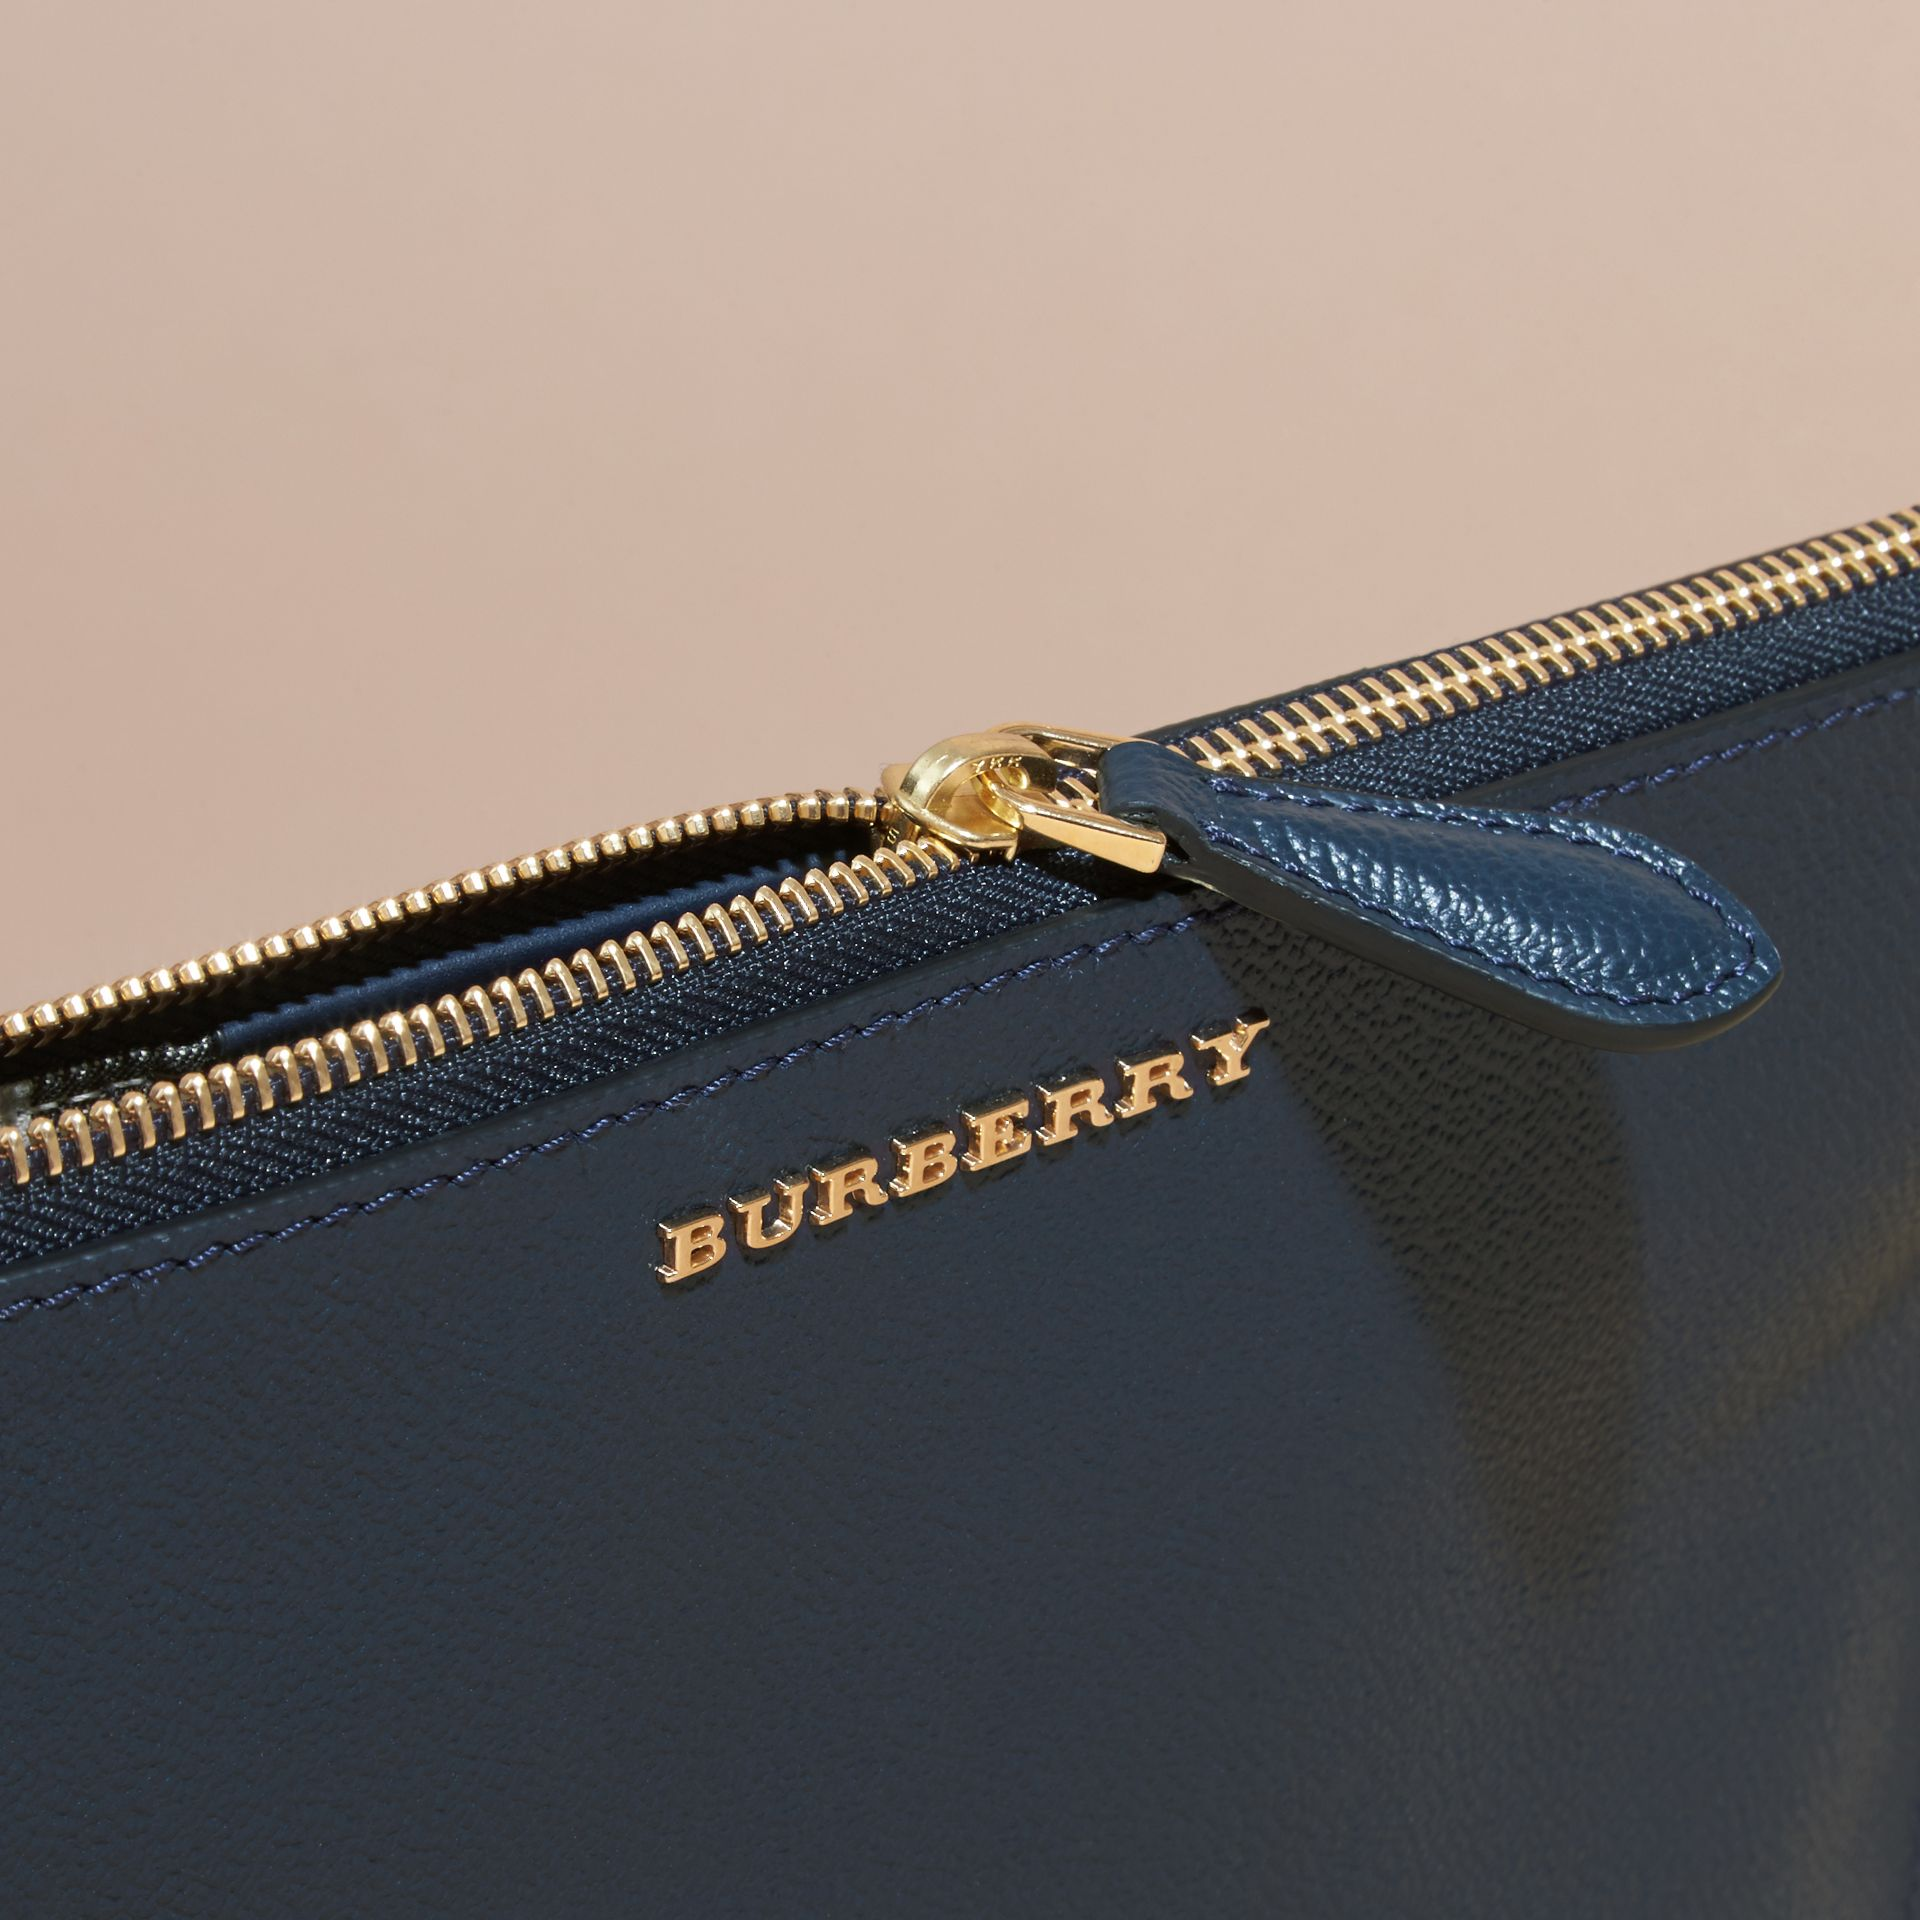 Leather Clutch Bag with Check Lining in Blue Carbon - Women | Burberry - gallery image 2